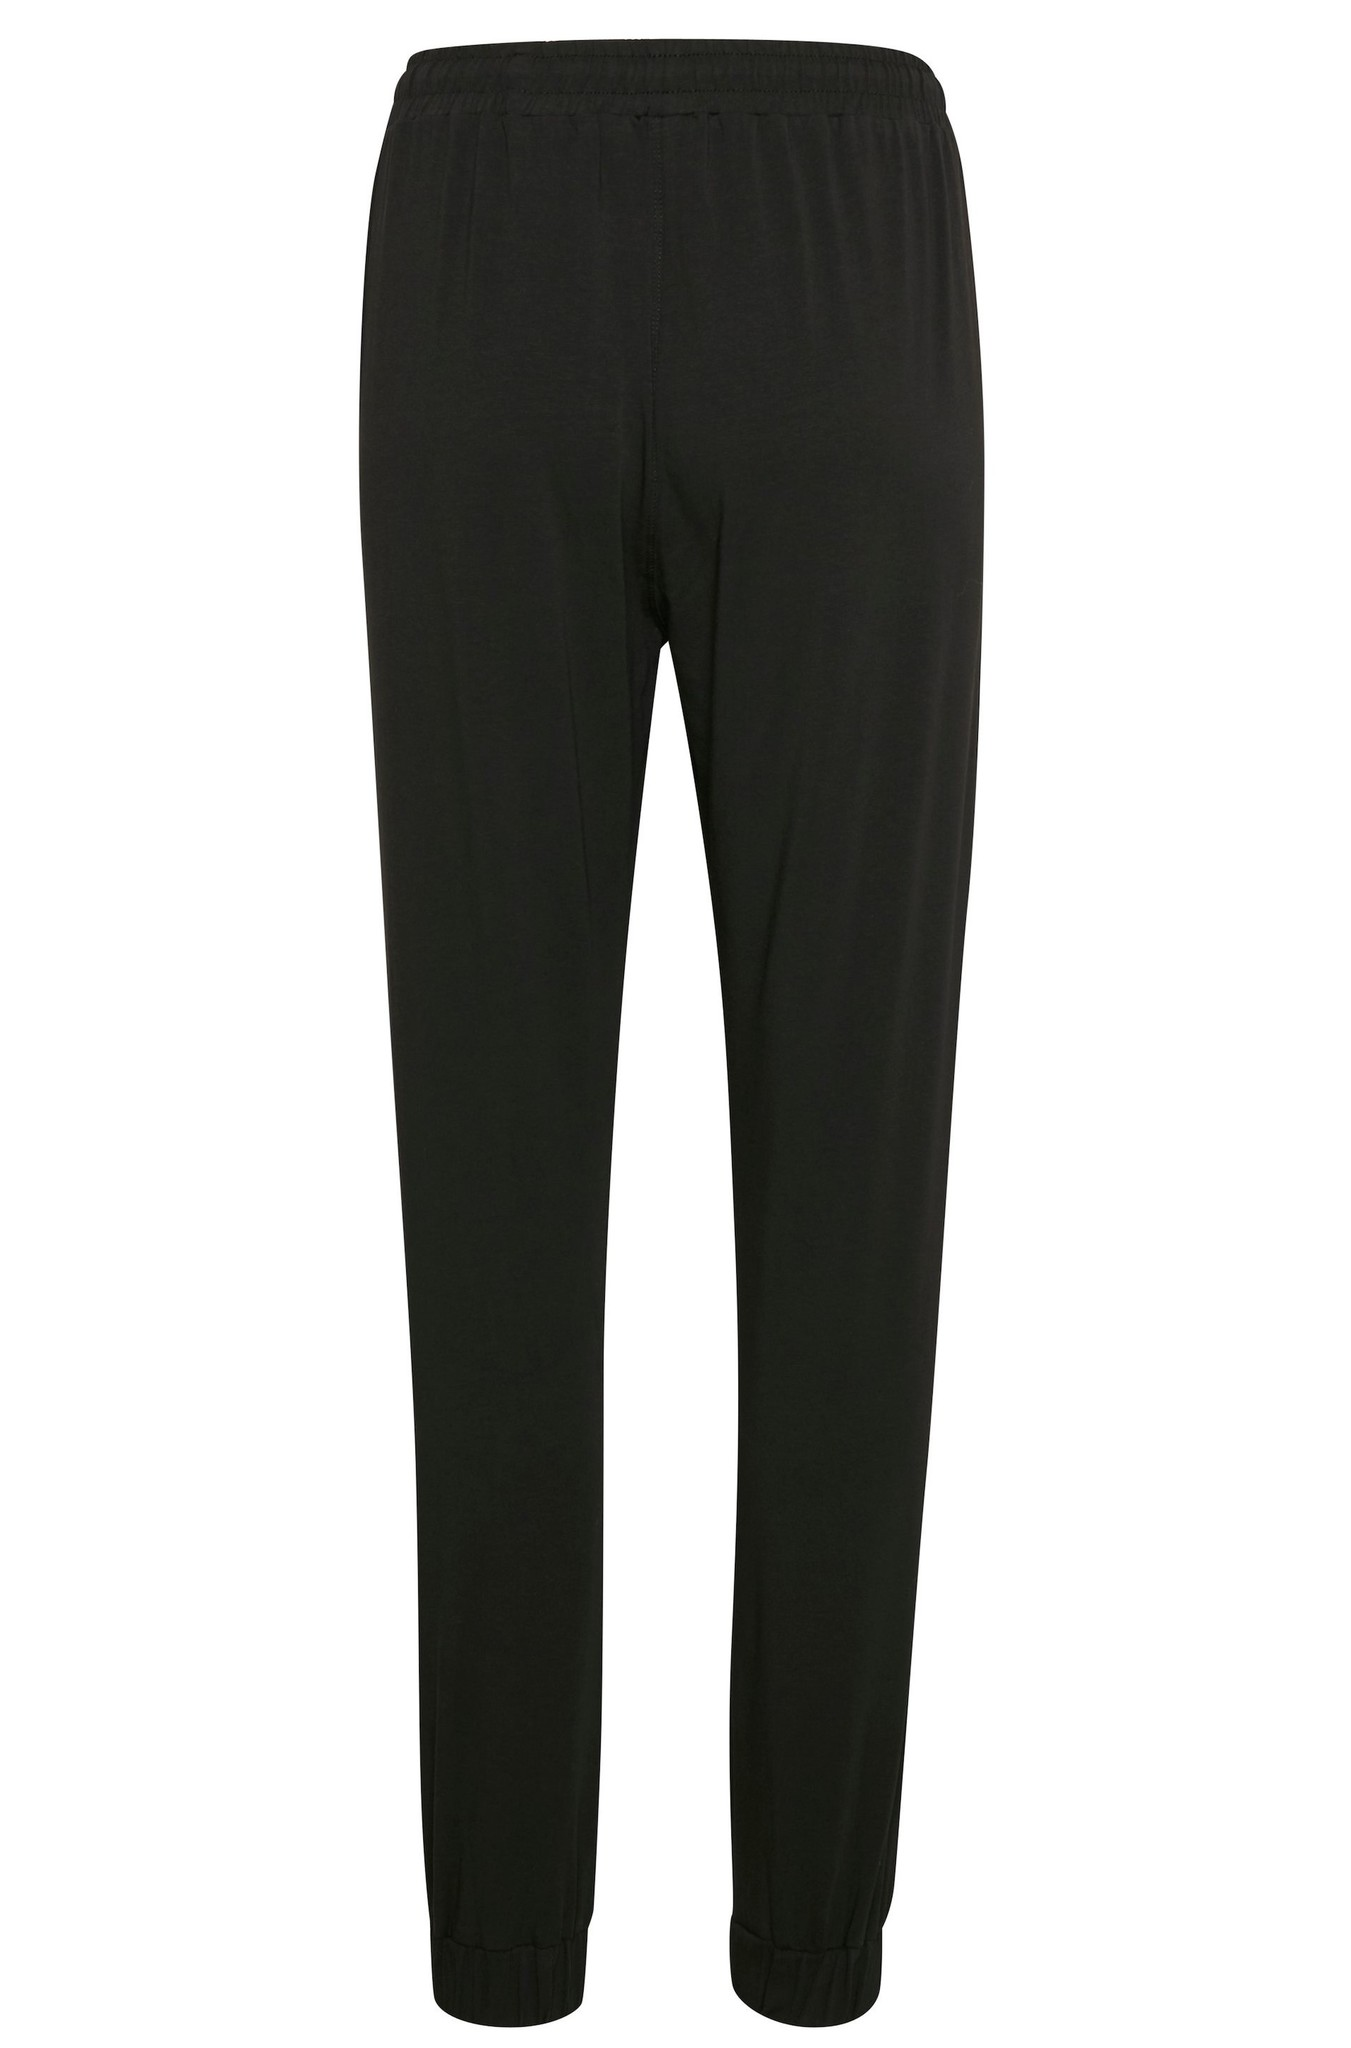 Broek KAdana Linda pants black deep-5